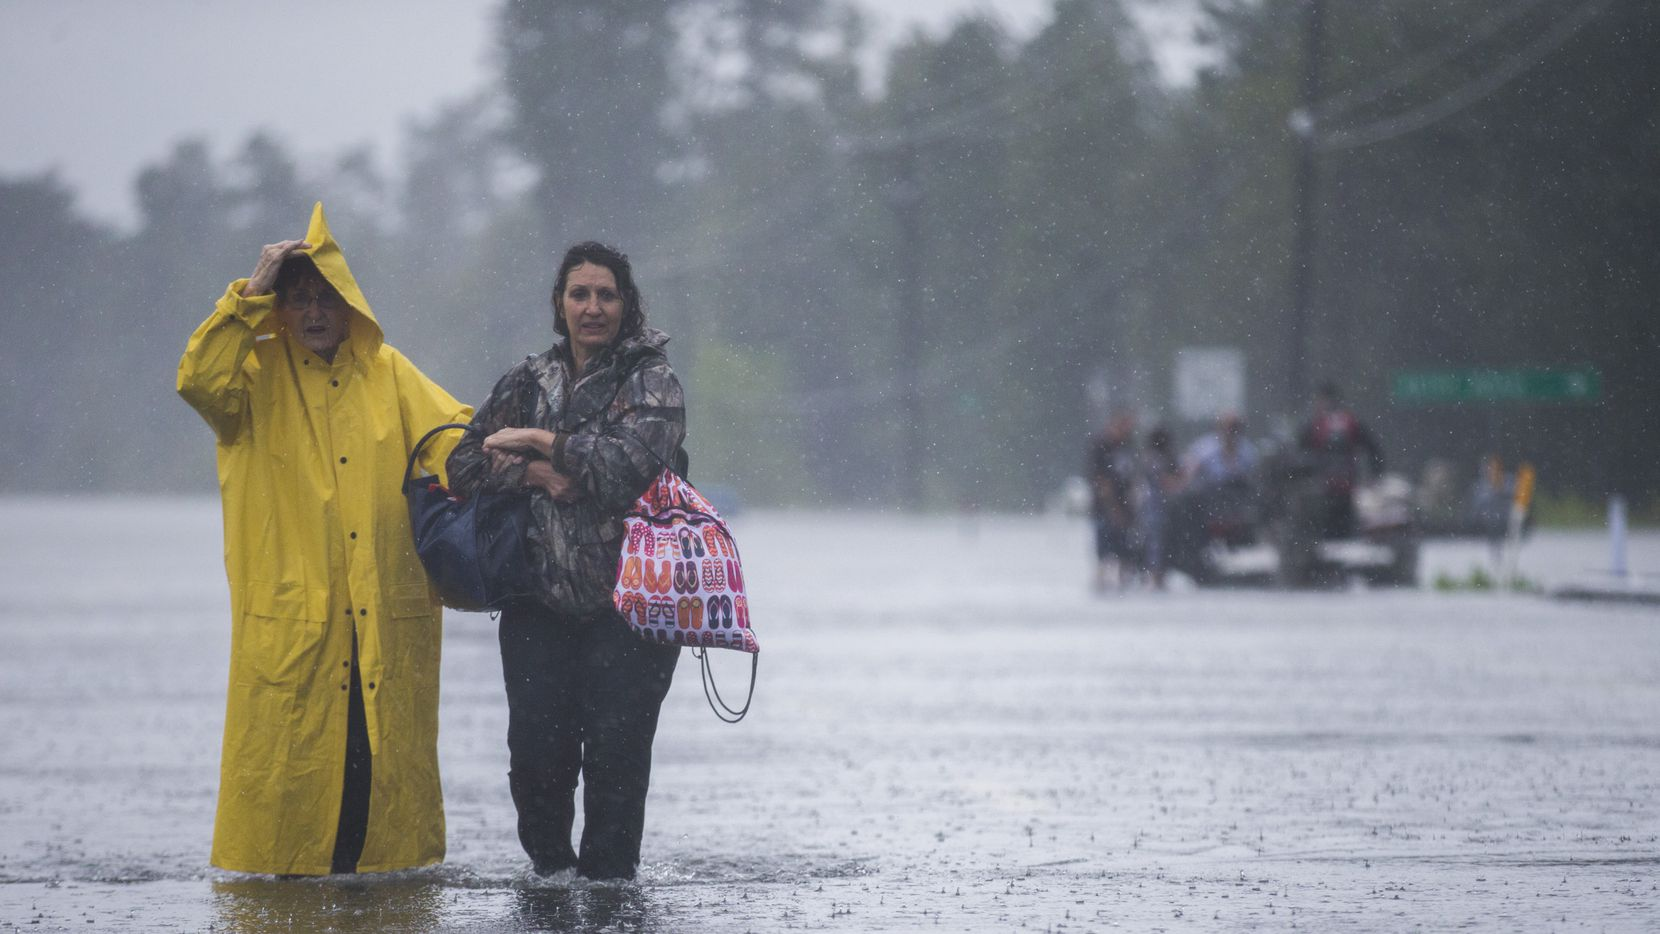 Rita Prosperie, left, and Connie McNeer walk out of flood waters to safety near Highway 96 on Wednesday, August 30 in Lumberton, Texas.